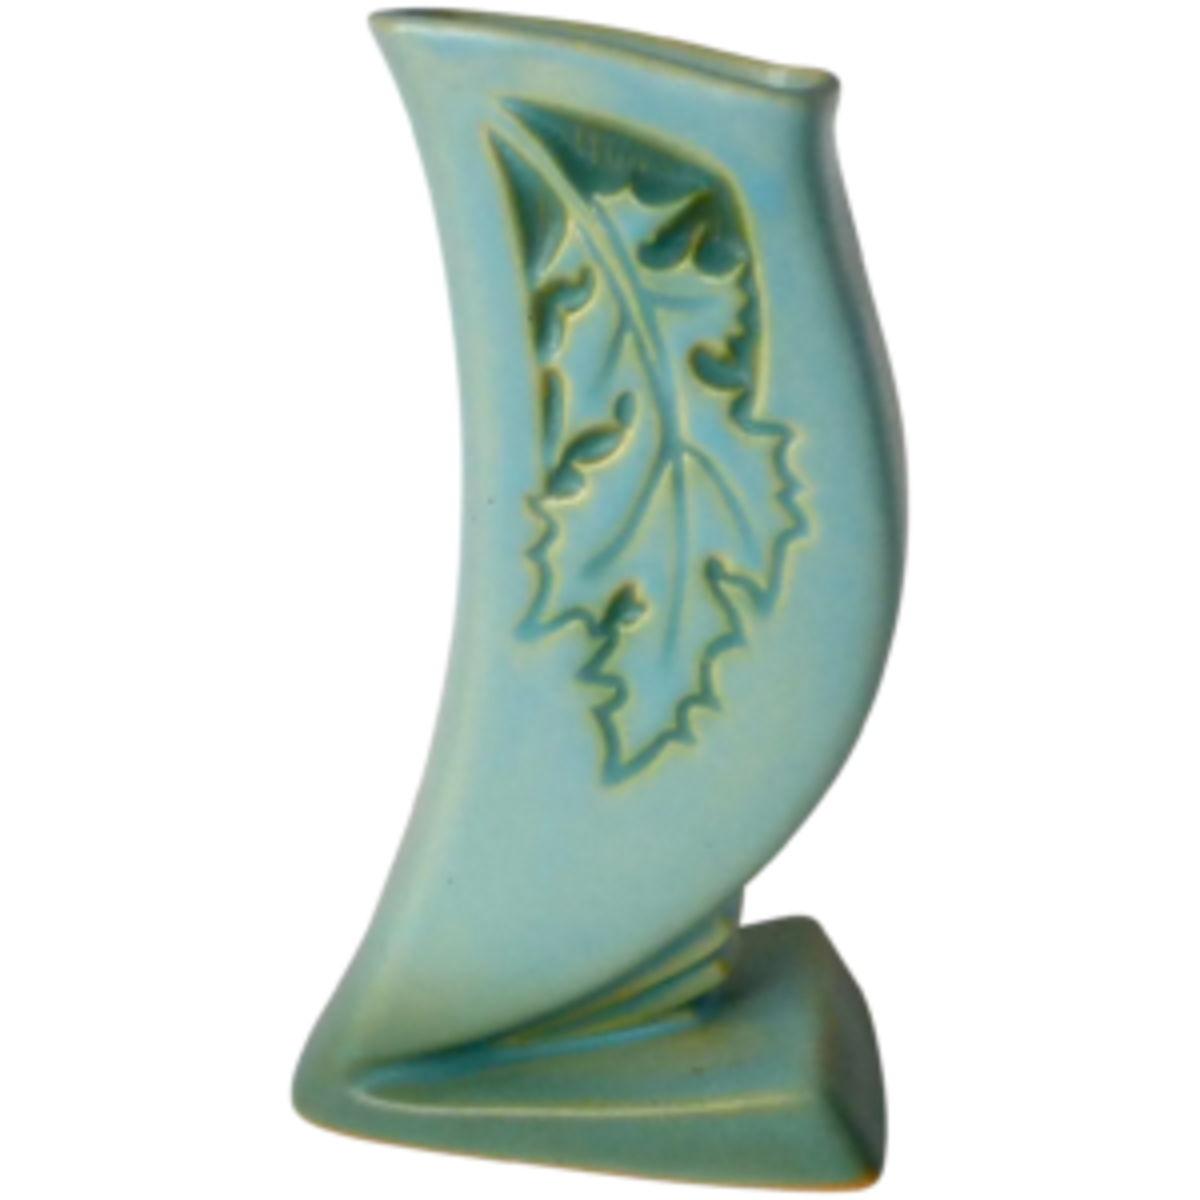 A beautiful Roseville pottery Oak Leaf Silhouette Vase has the theme of fall, but is in an unexpected color of a lovely blue green matte glaze. The graceful shape has an unusual stepped design at the base, the curved body has a delicate silhouette of an oak leaf on both sides; $125. Courtesy of Bejeweled: rubylane.com/shop/bejewelled